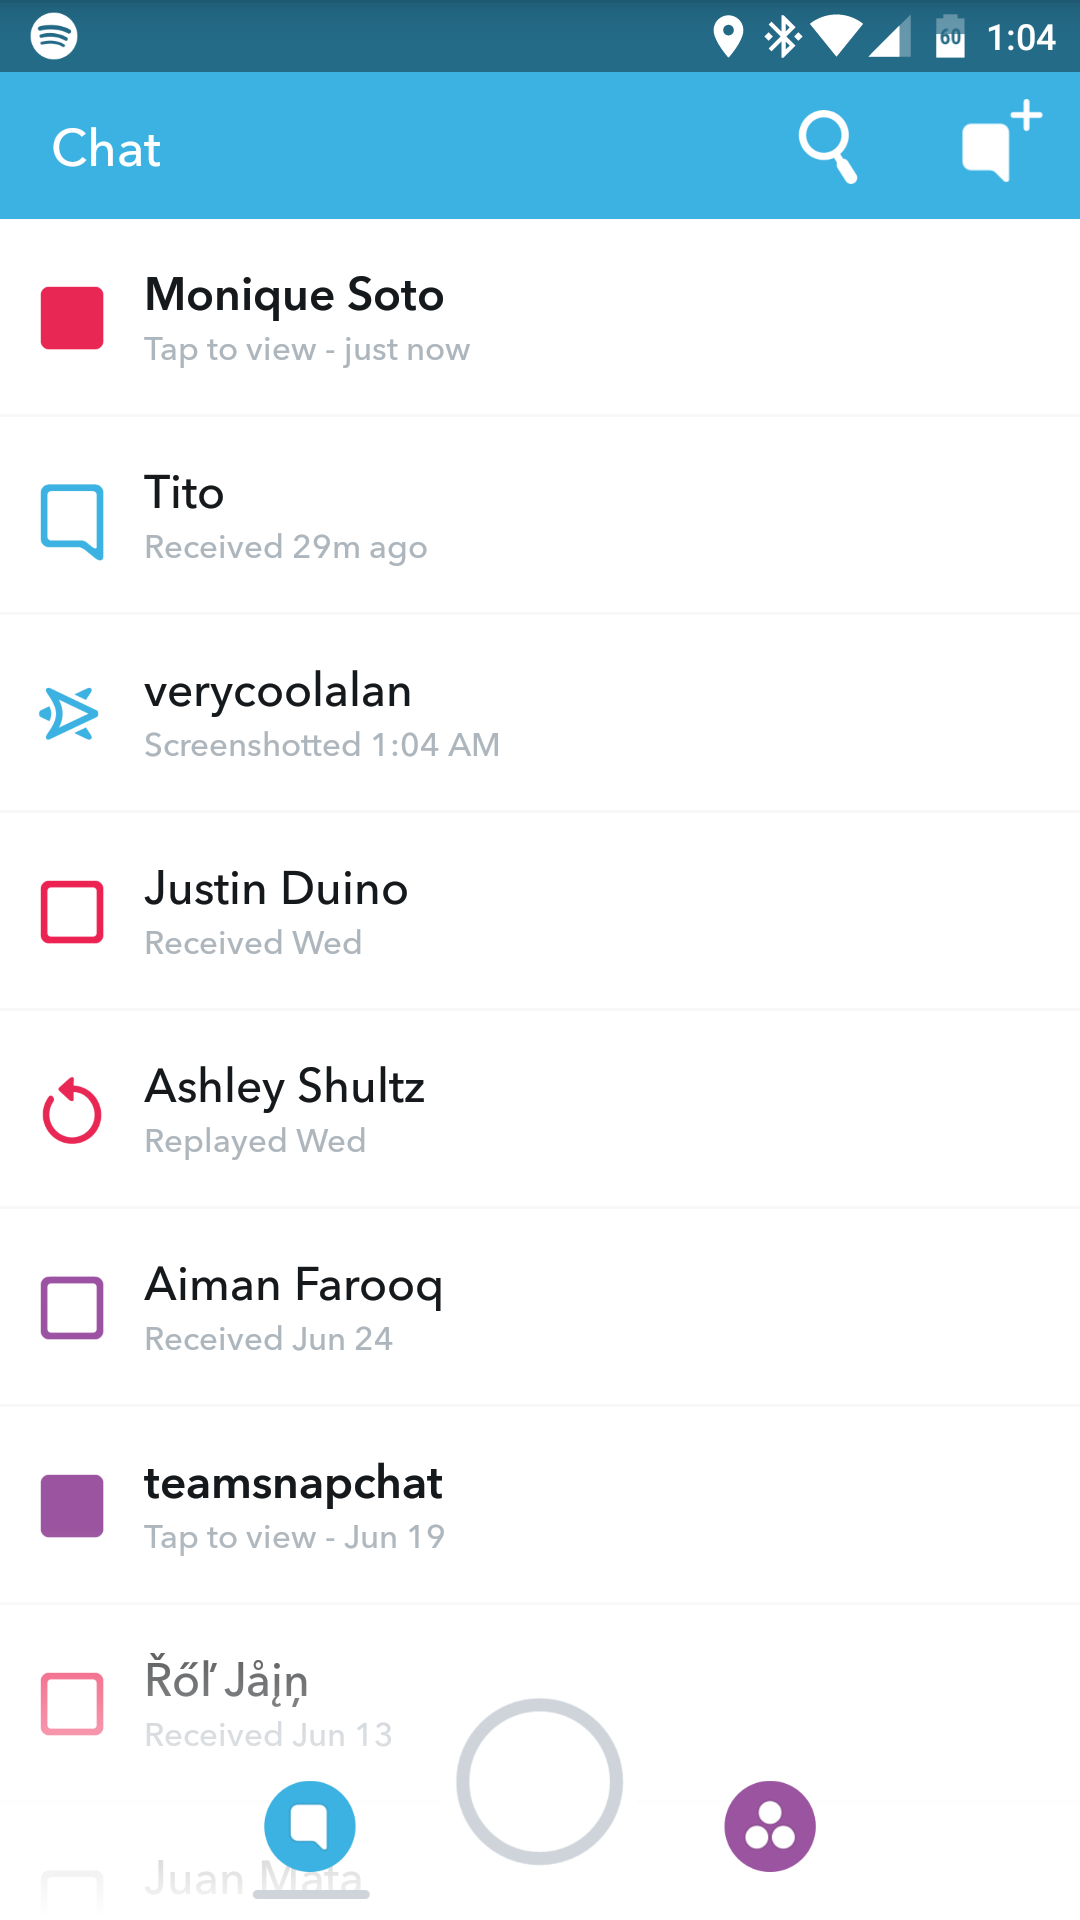 how to use photo from phone on snapchat to cut